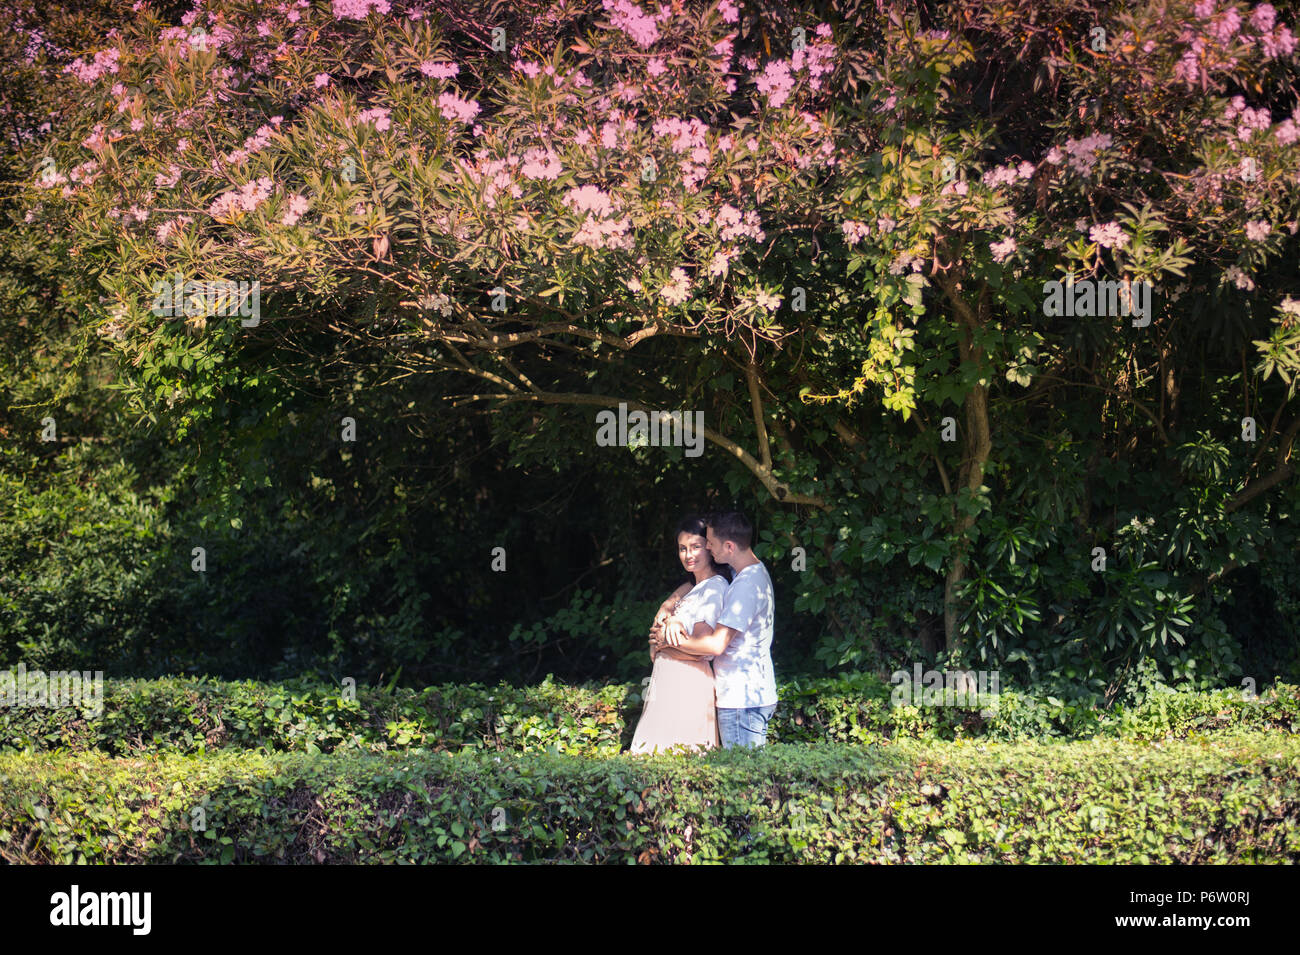 Couple in love - Beginning of a Love Story. A man and a girl romantic date in a park - Stock Image